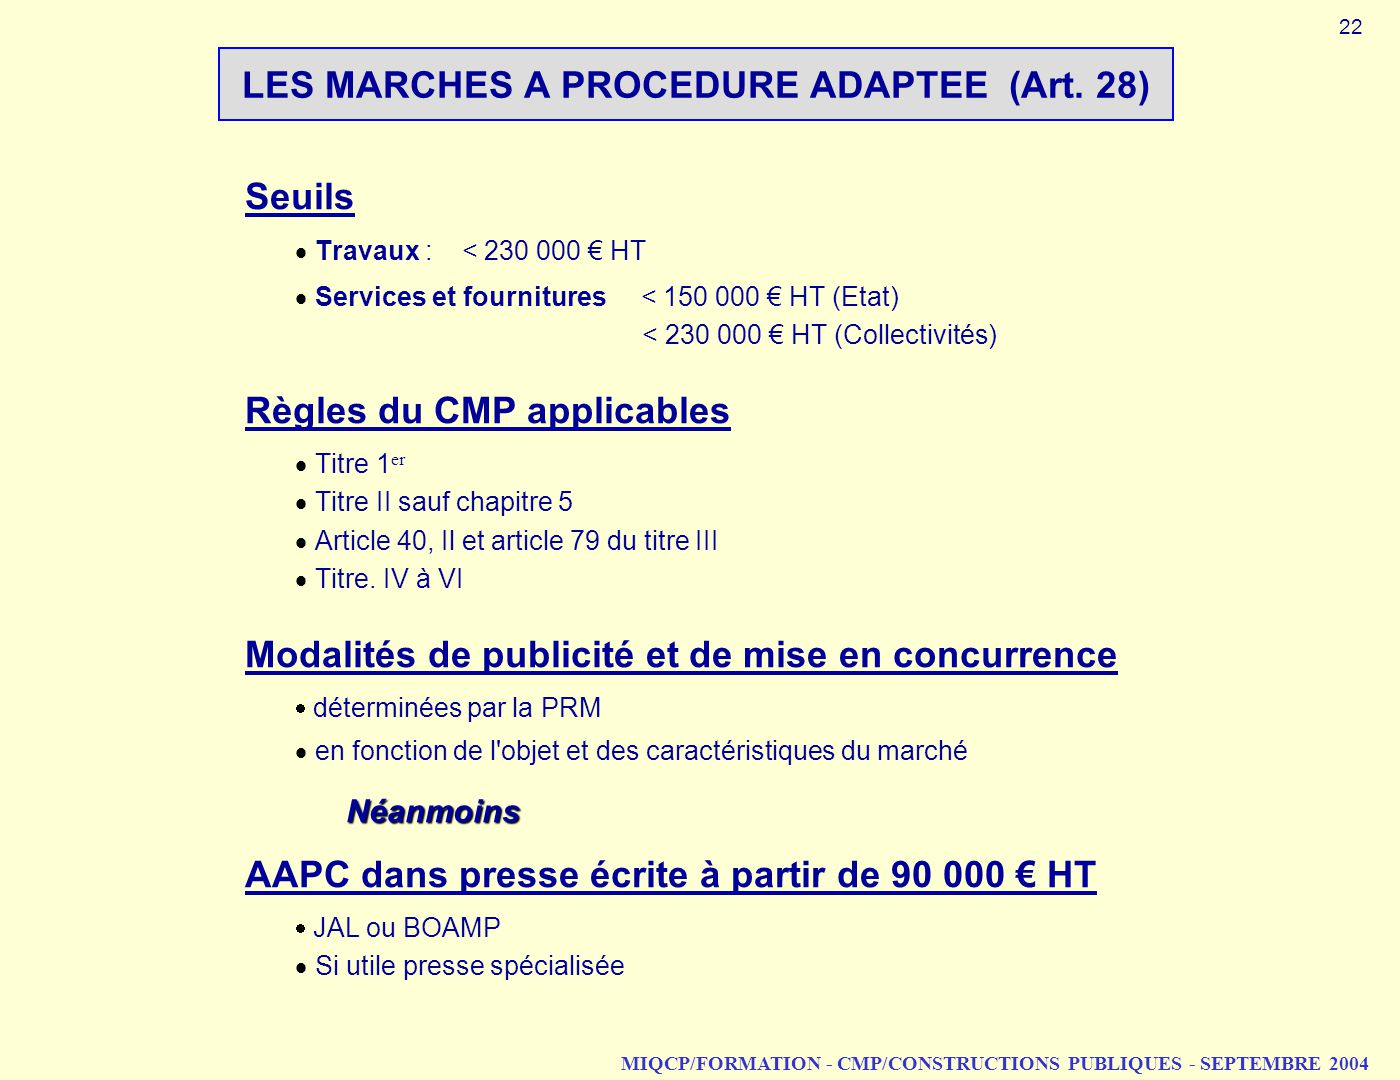 LES MARCHES A PROCEDURE ADAPTEE (Art. 28)